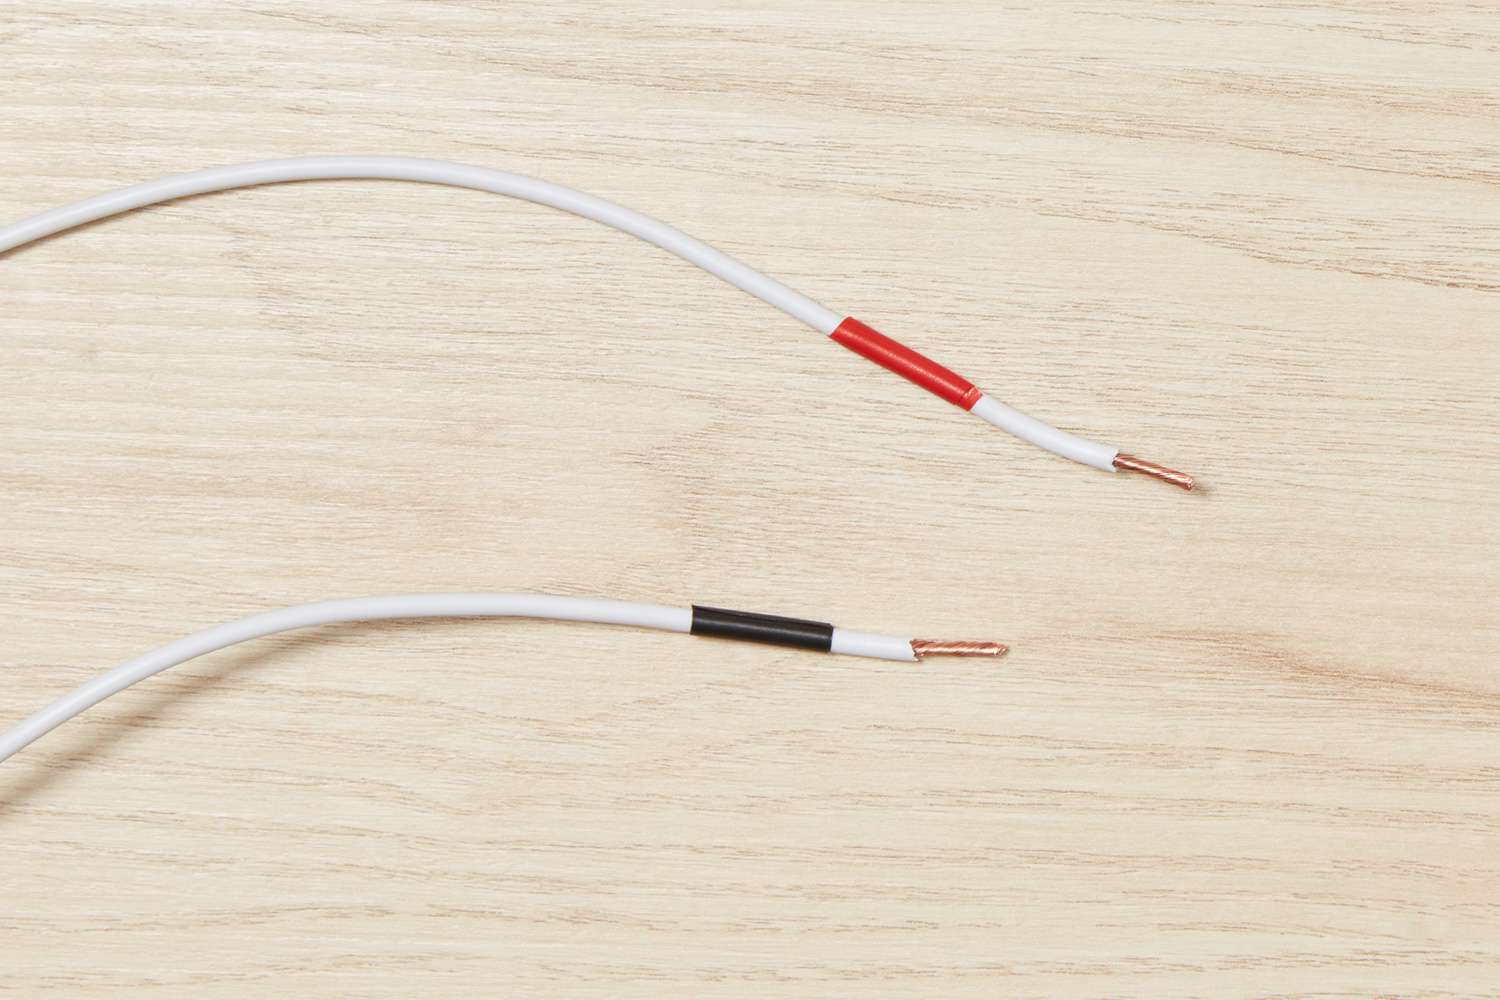 White electrical wire with red and black tape